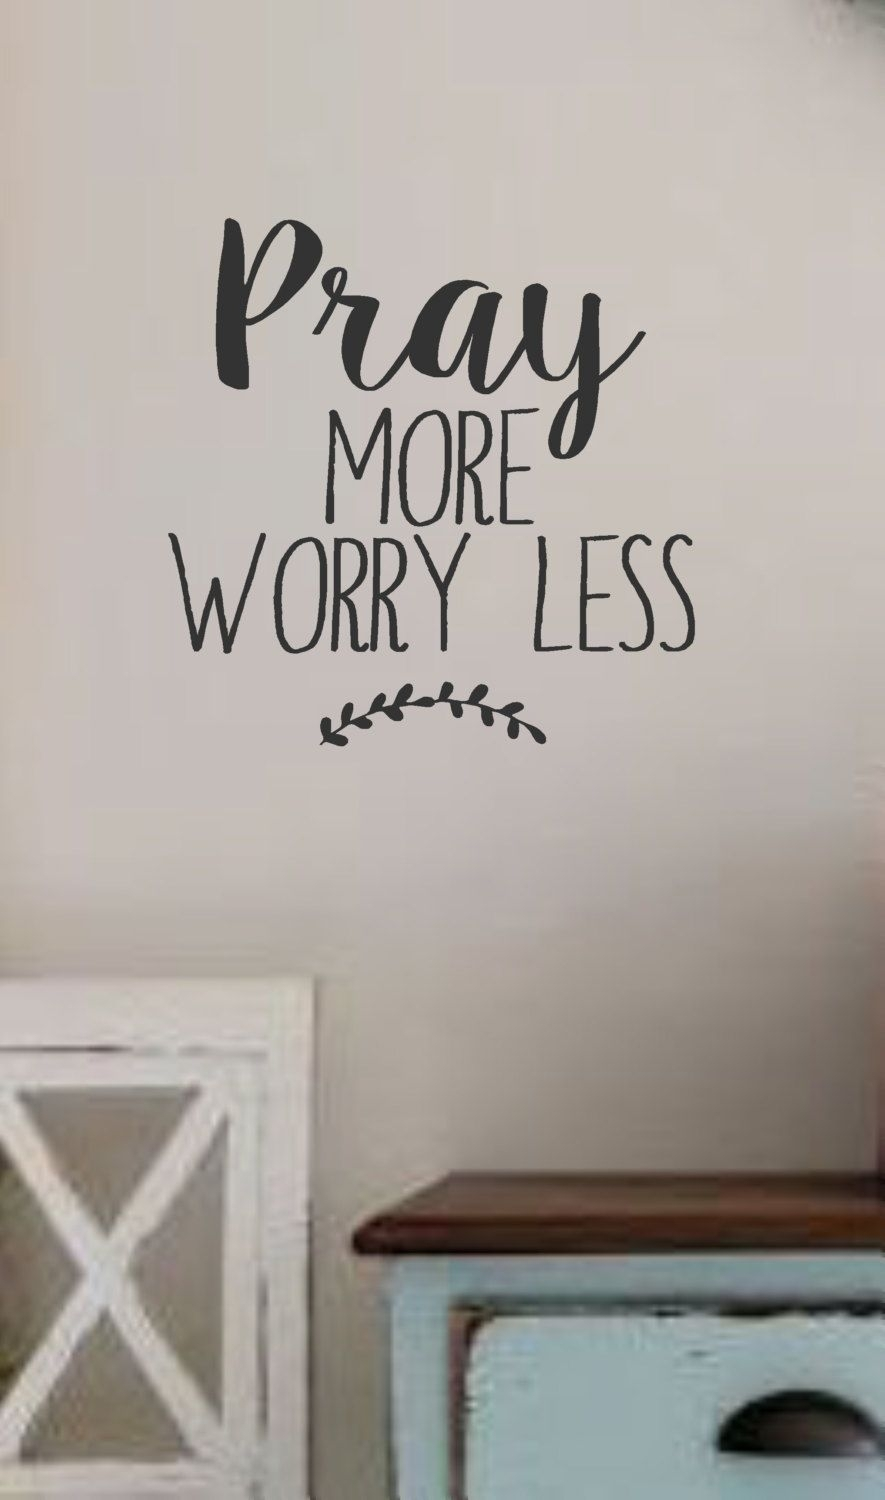 Pray More Worry Less Vinyl Wall Decal Wall Quotes Bible Quotes With Regard To 2018 Vinyl Wall Accents (Gallery 10 of 15)